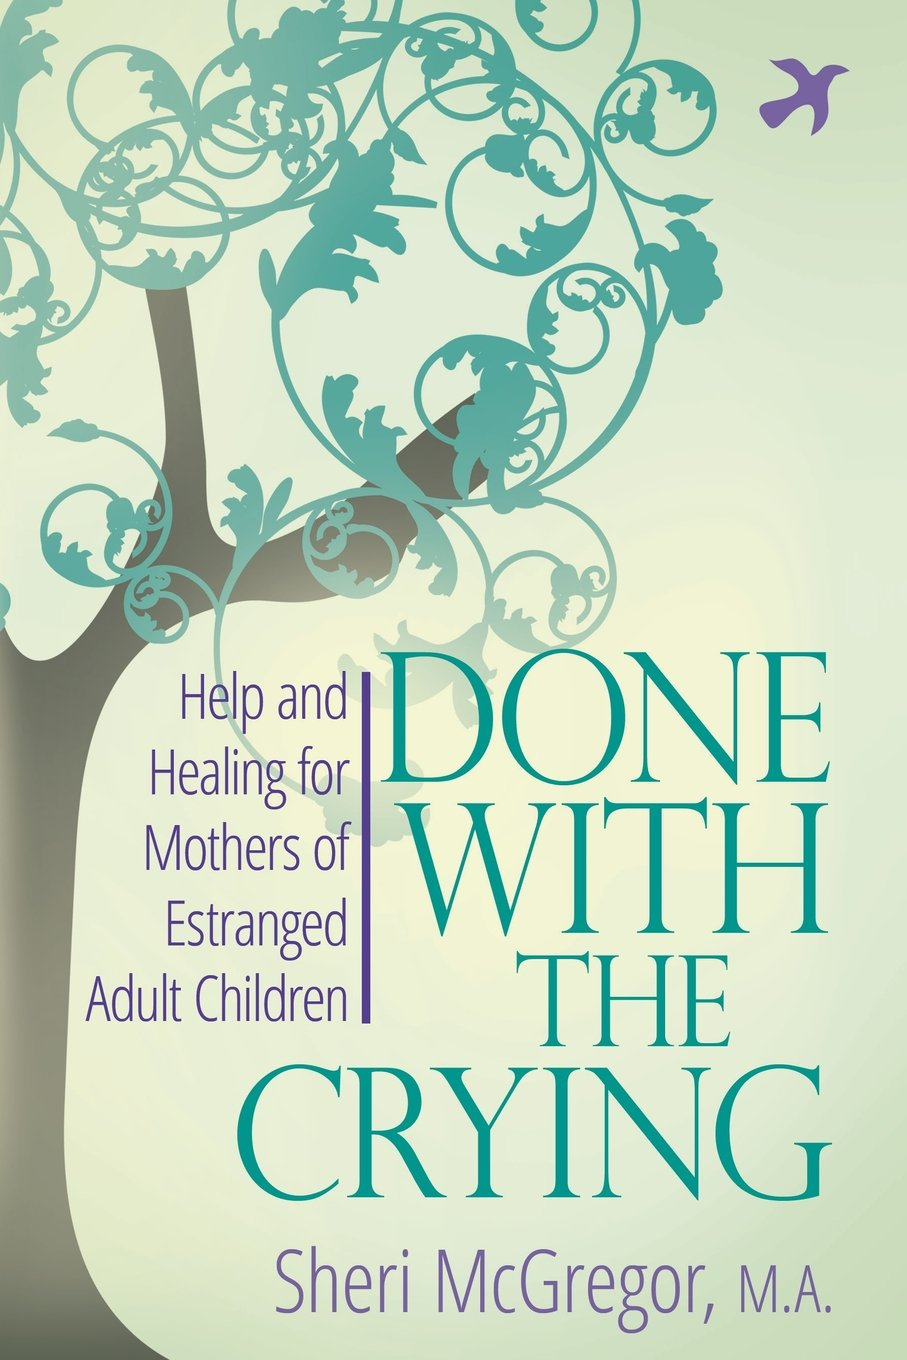 Done With The Crying: Help and Healing for Mothers of Estranged Adult  Children: Sheri McGregor M.A.: 9780997352207: Amazon.com: Books